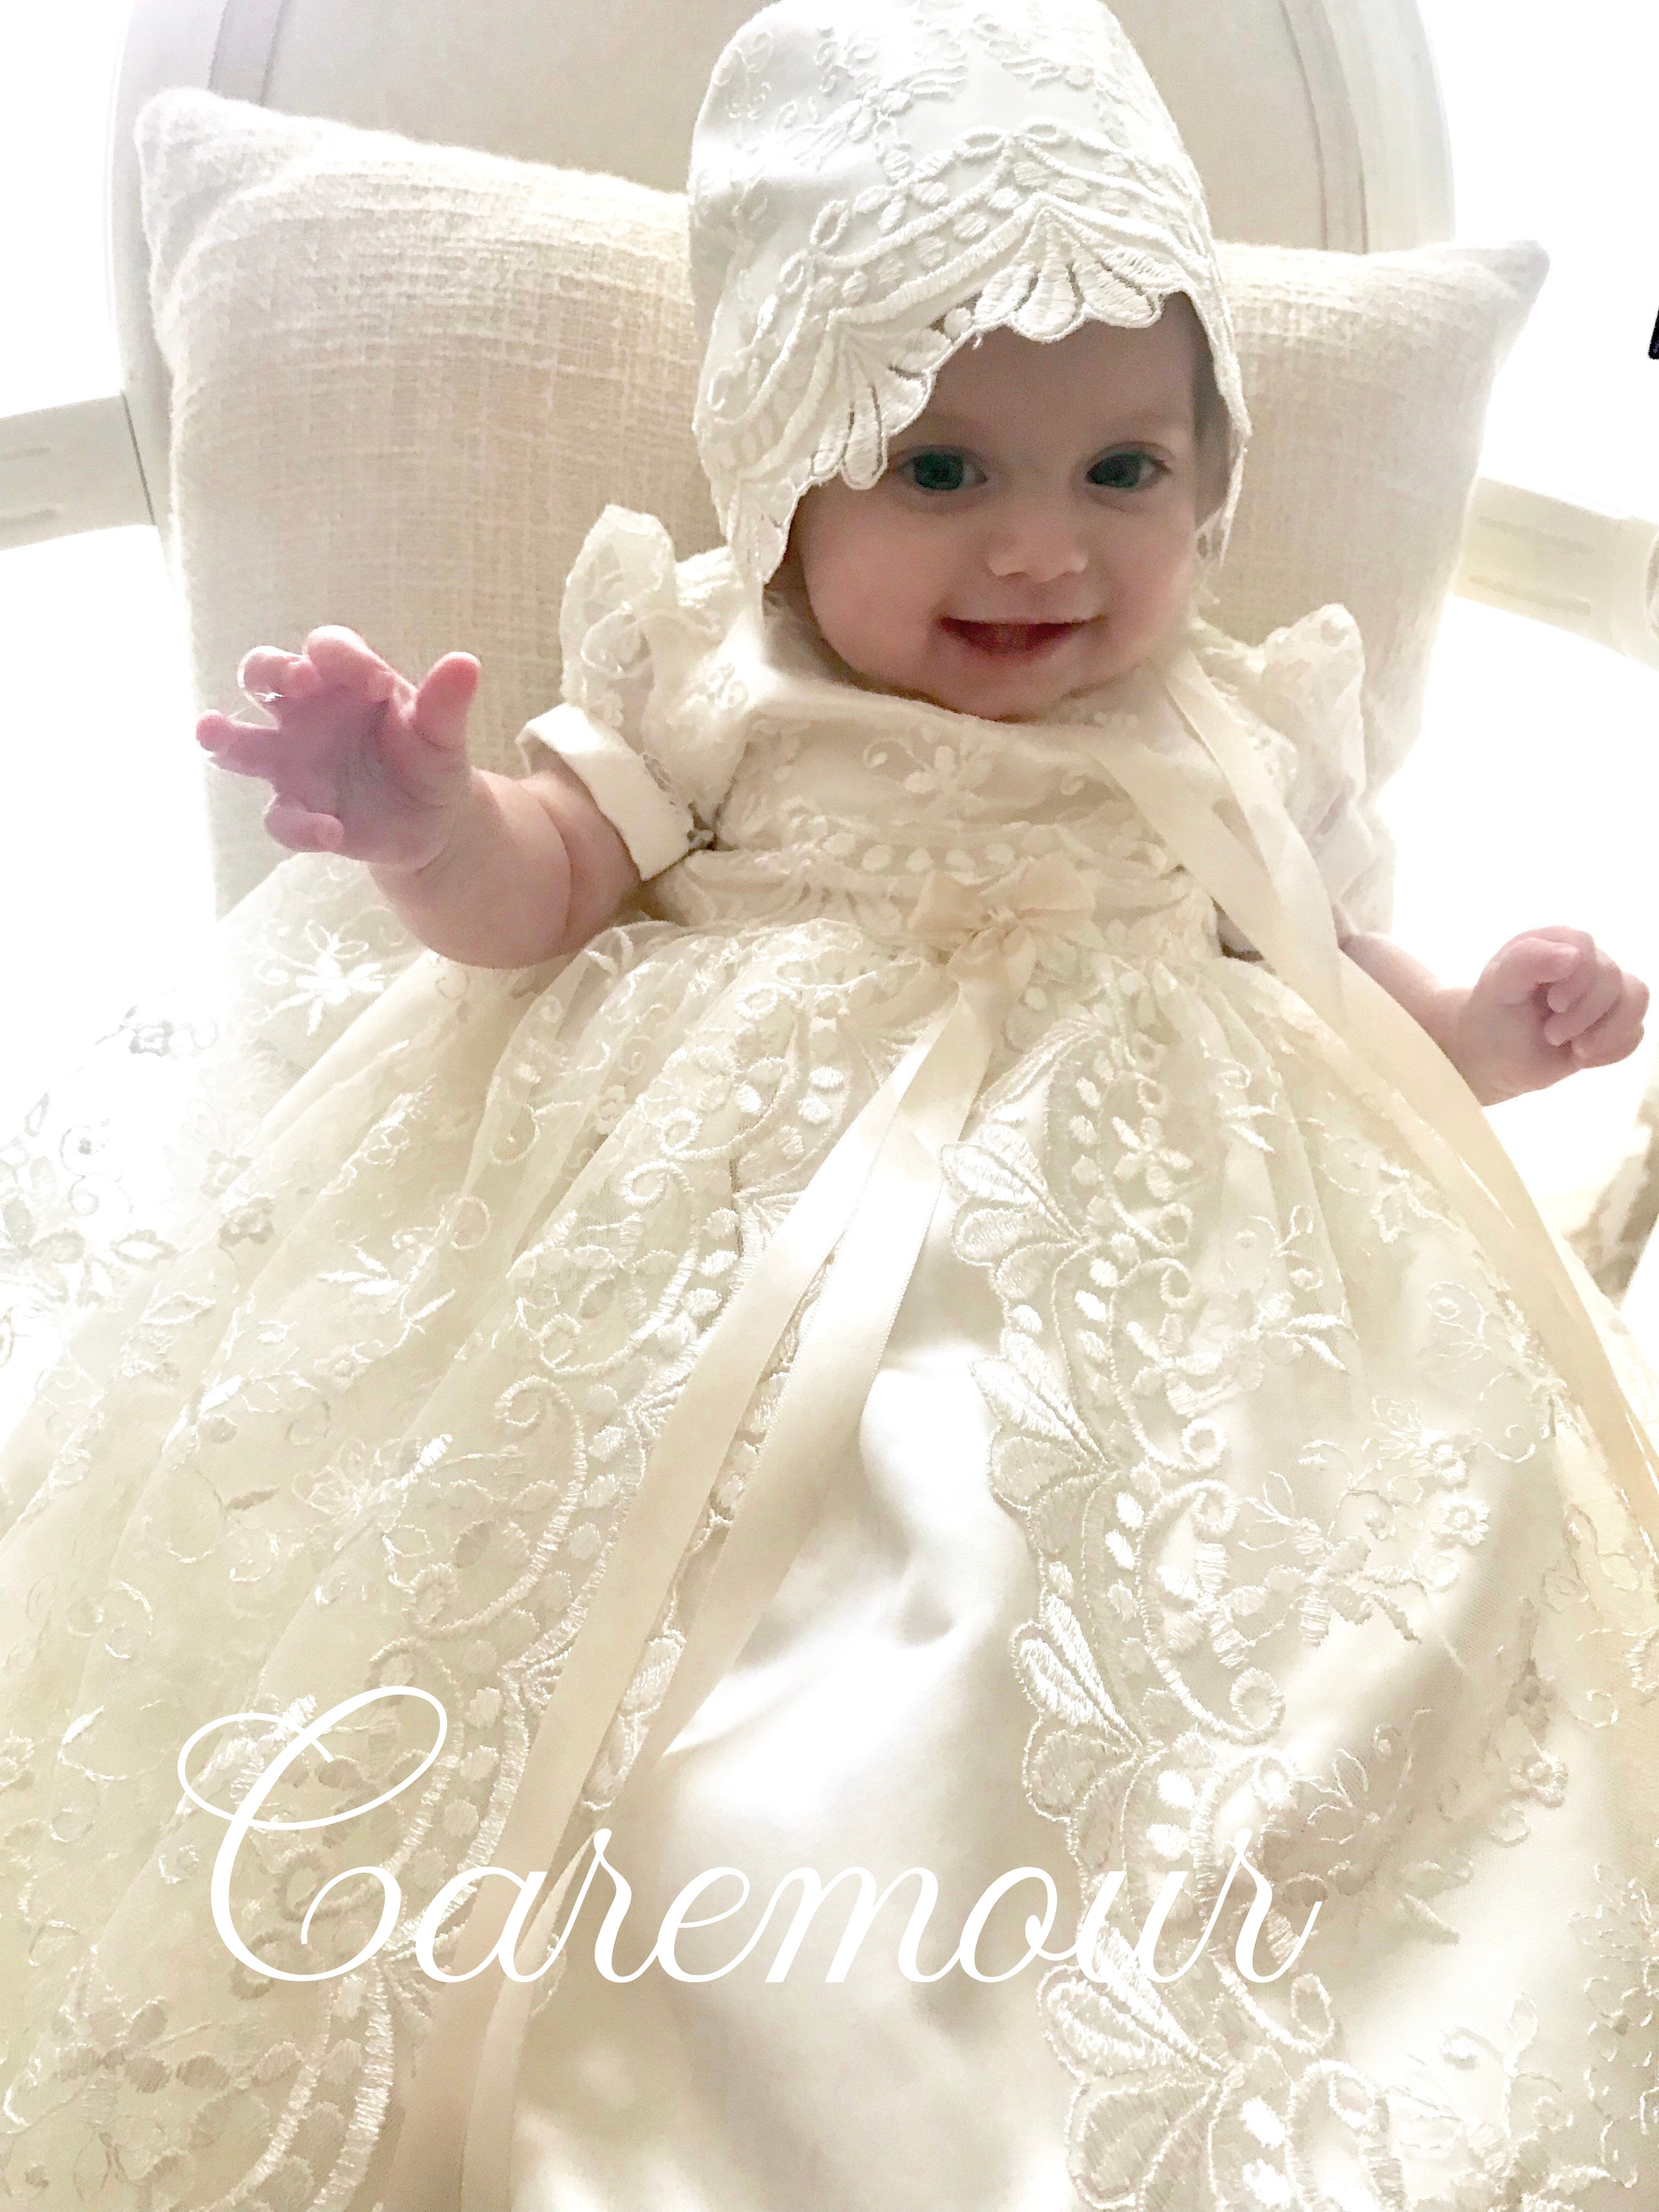 0-3 months 3-6 months 9-12 months Dedication 6-9 months Stunning Off White Lace Christening Gown Baptism 0-3 months SALE